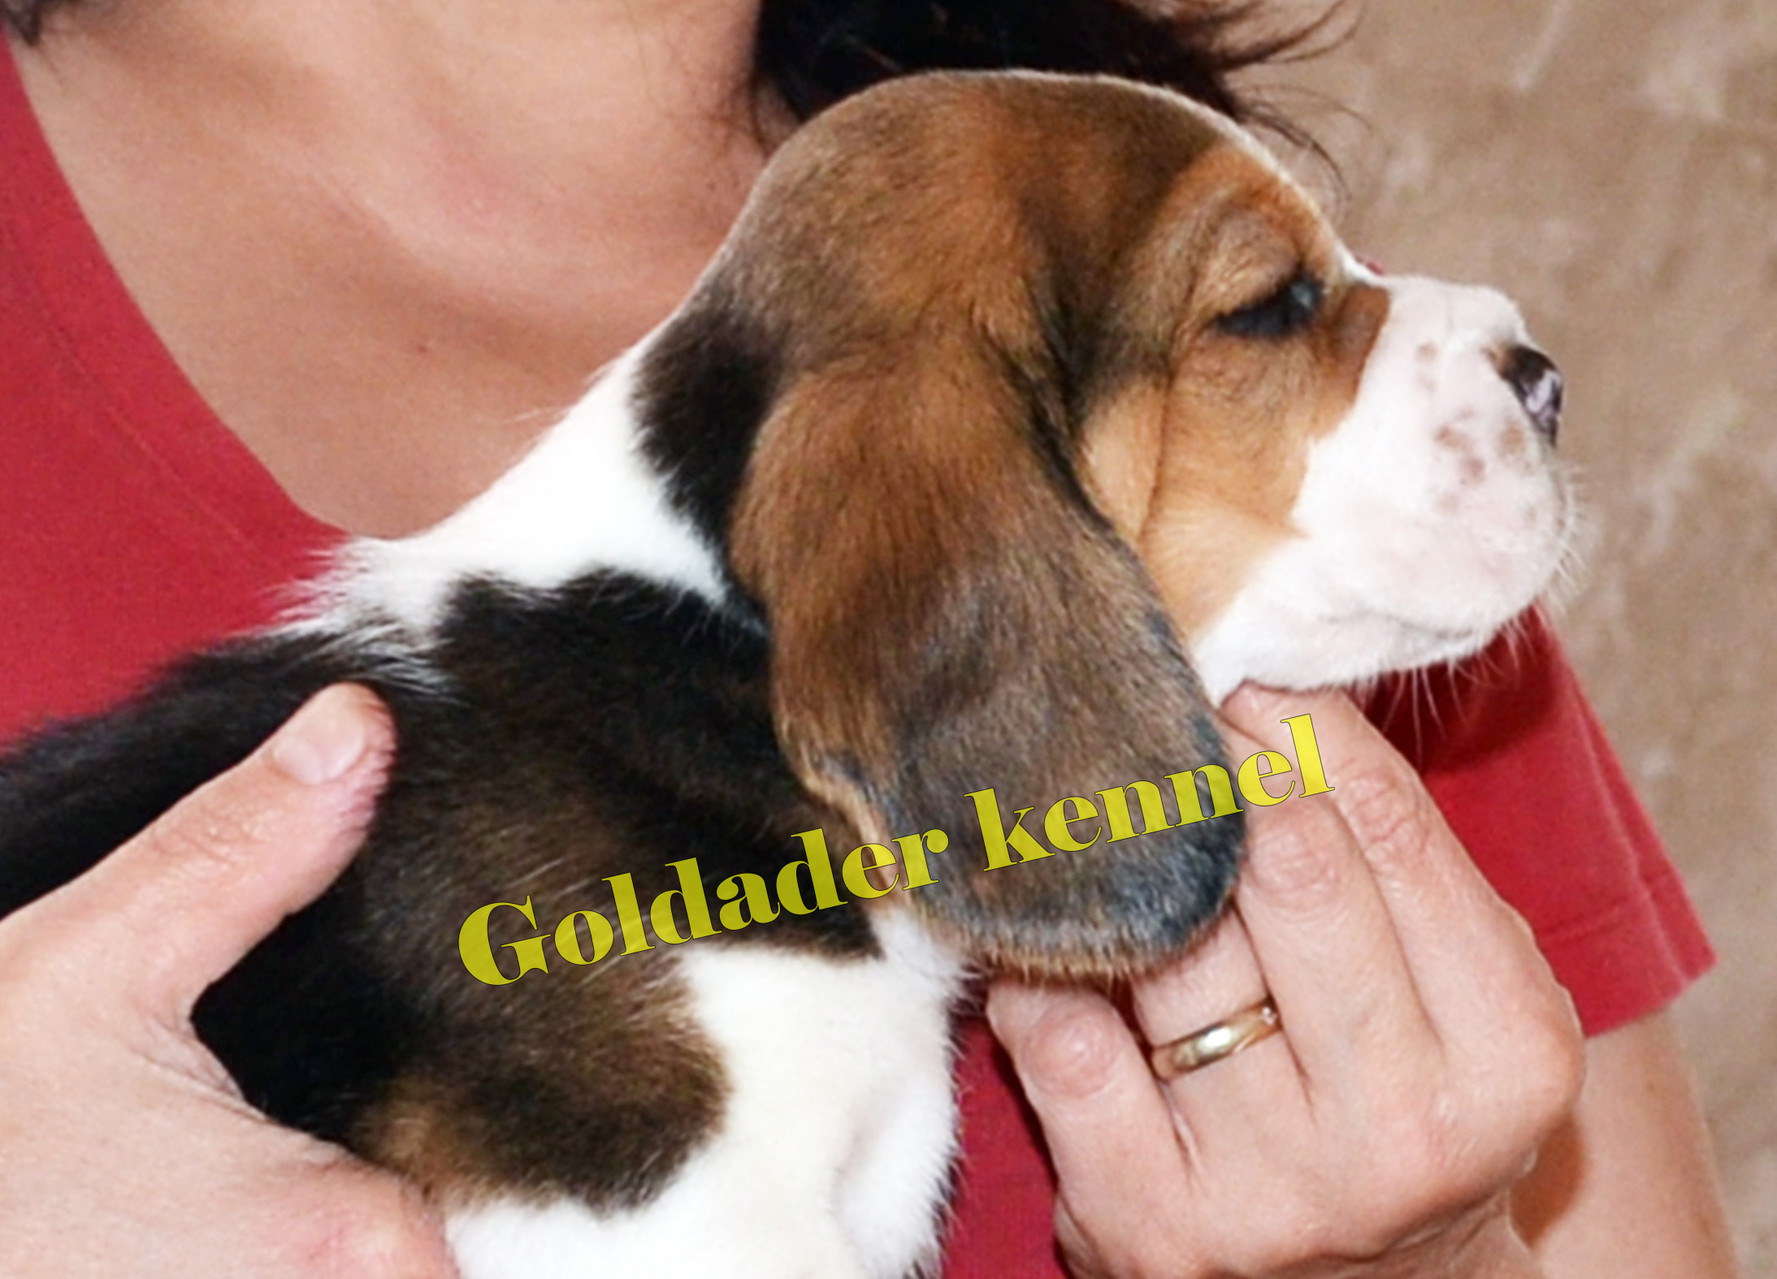 Goldader Vezzaro, 35 days old